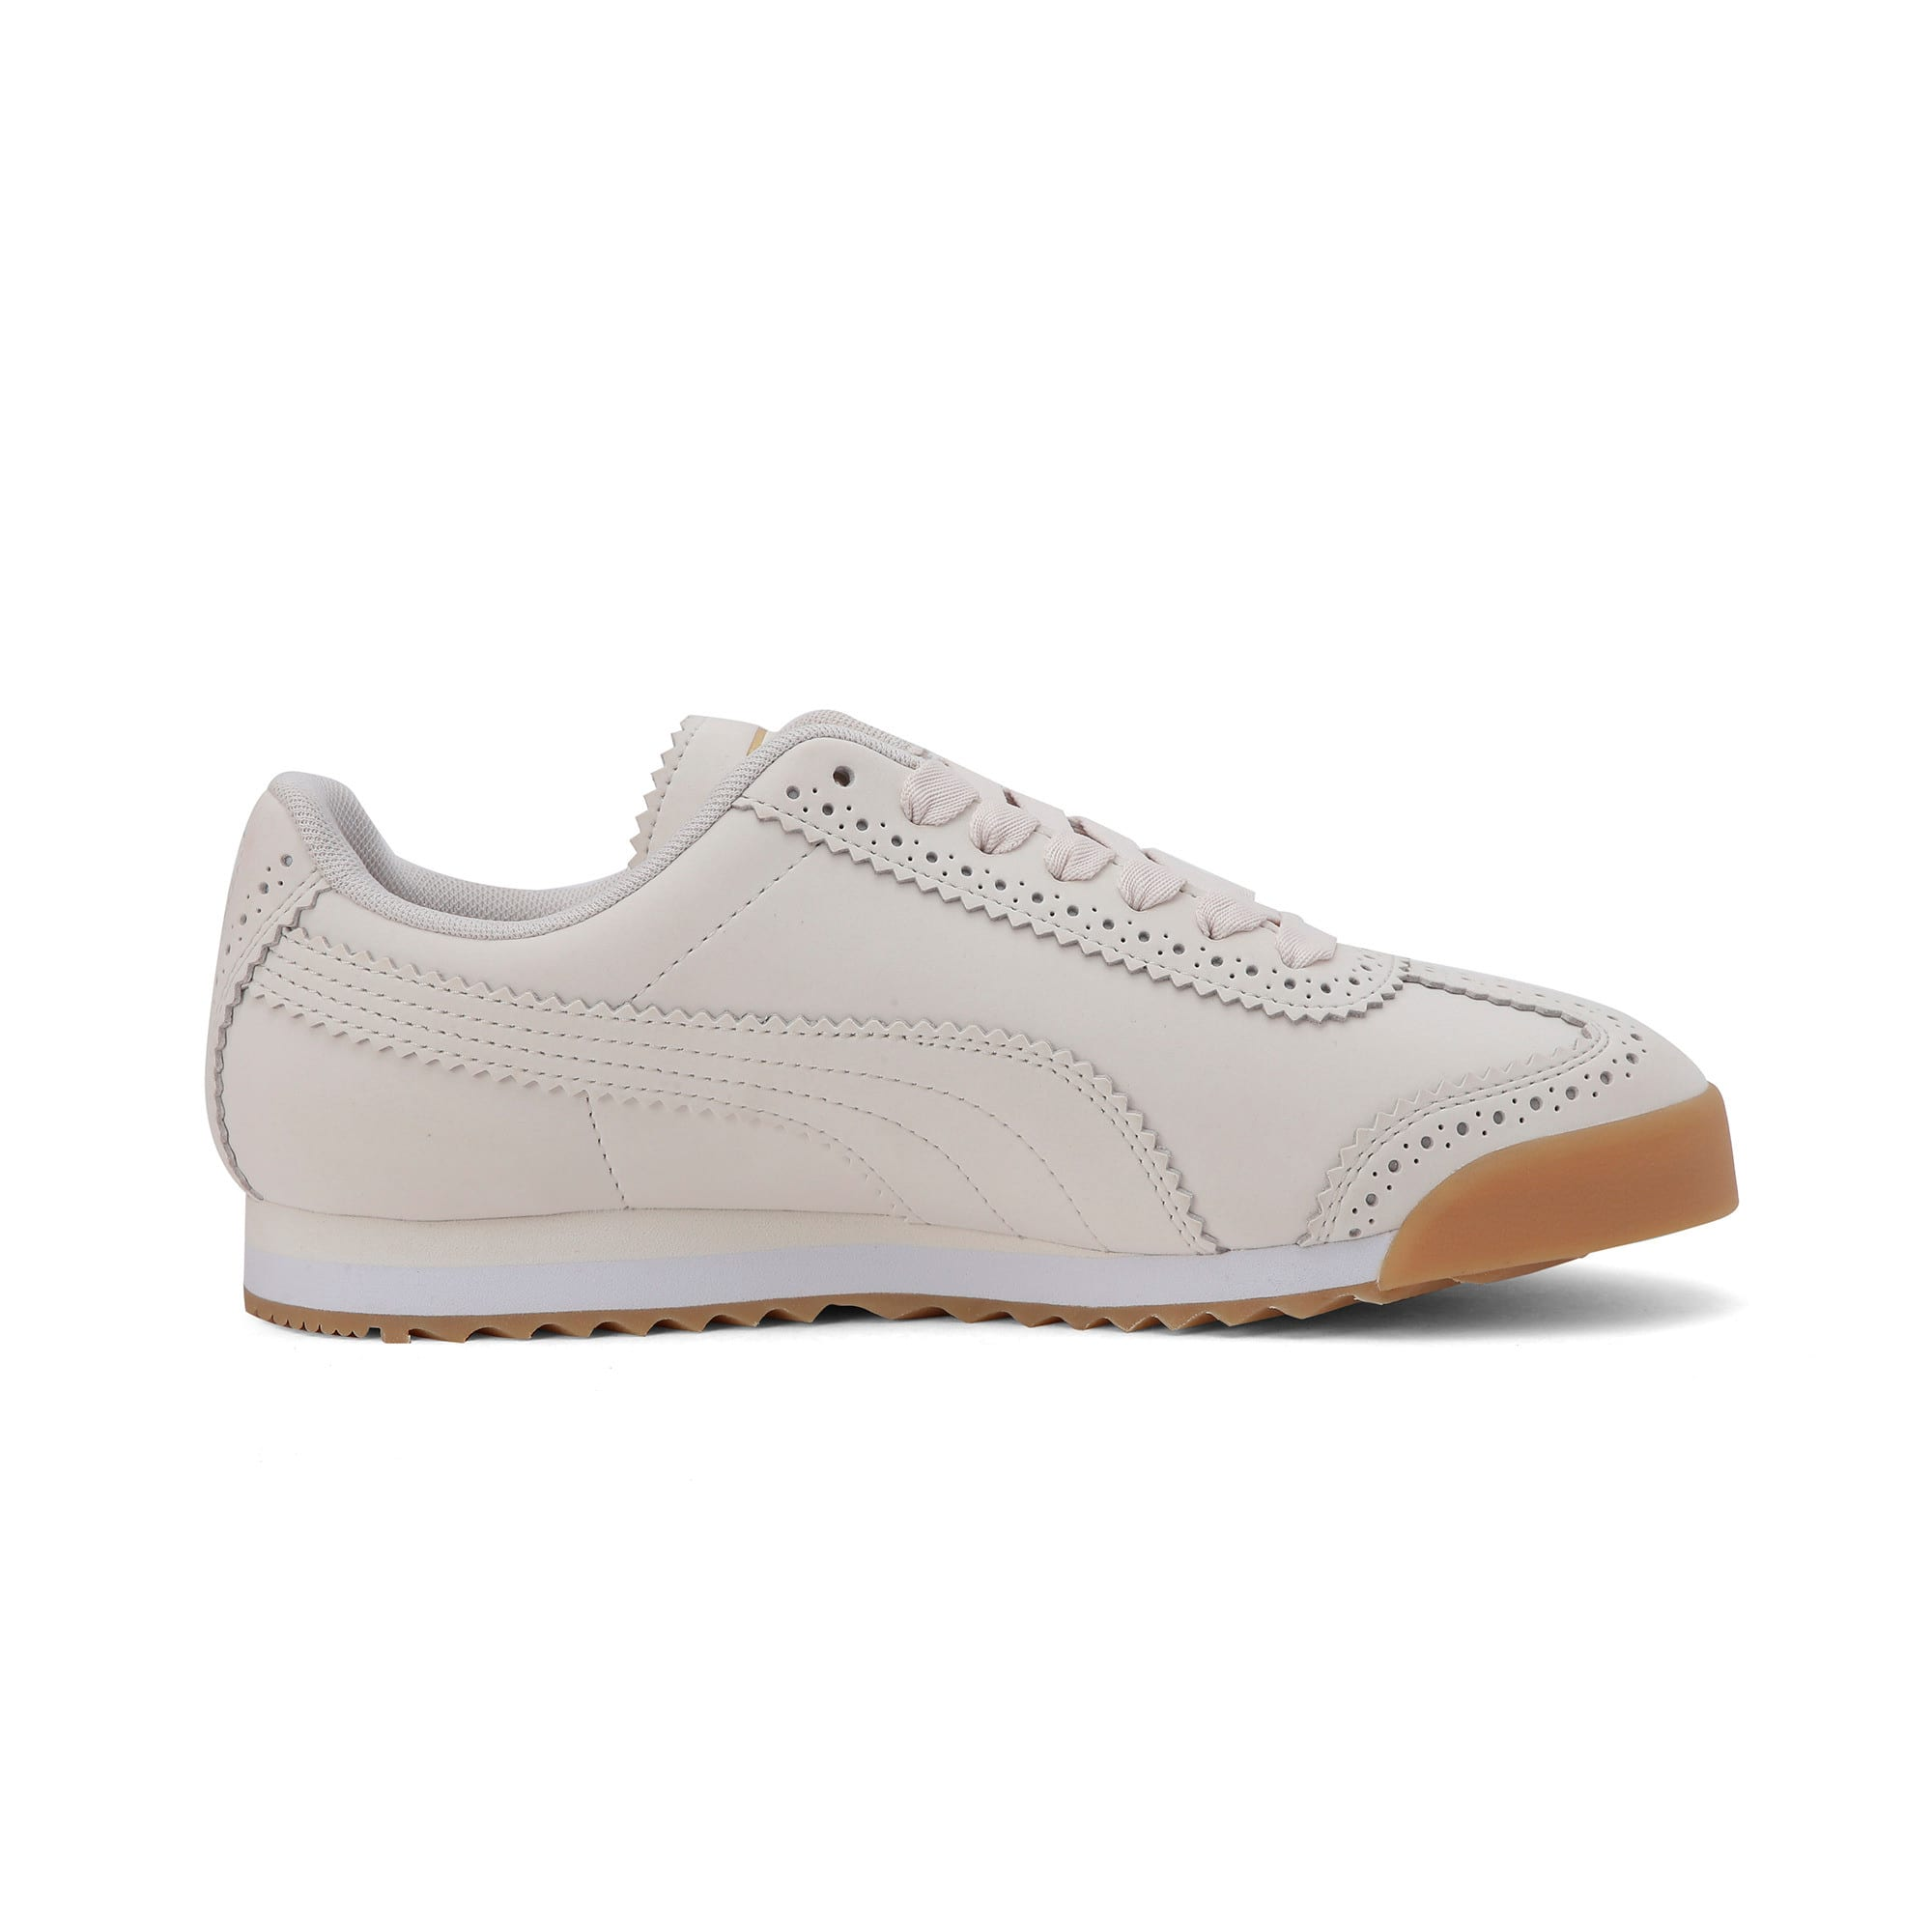 Thumbnail 6 of Roma Brogue Women's Trainers, Pastel Parchment-P.Team Gold, medium-IND